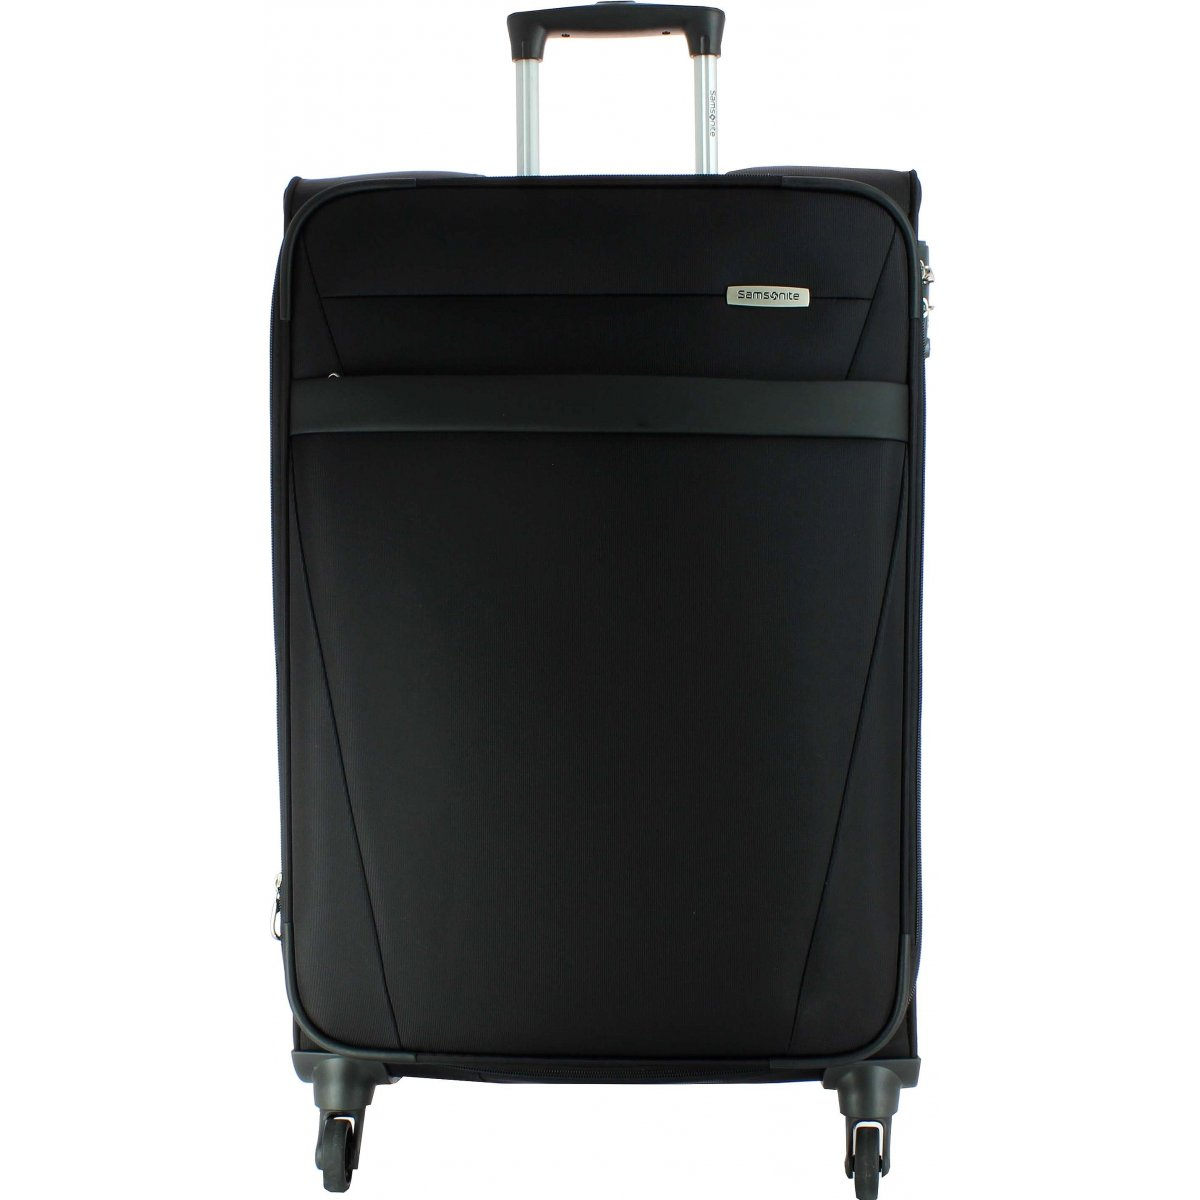 valise samsonite ncs auva spinner m 69cm ncsauva21 couleur principale noir promotion. Black Bedroom Furniture Sets. Home Design Ideas